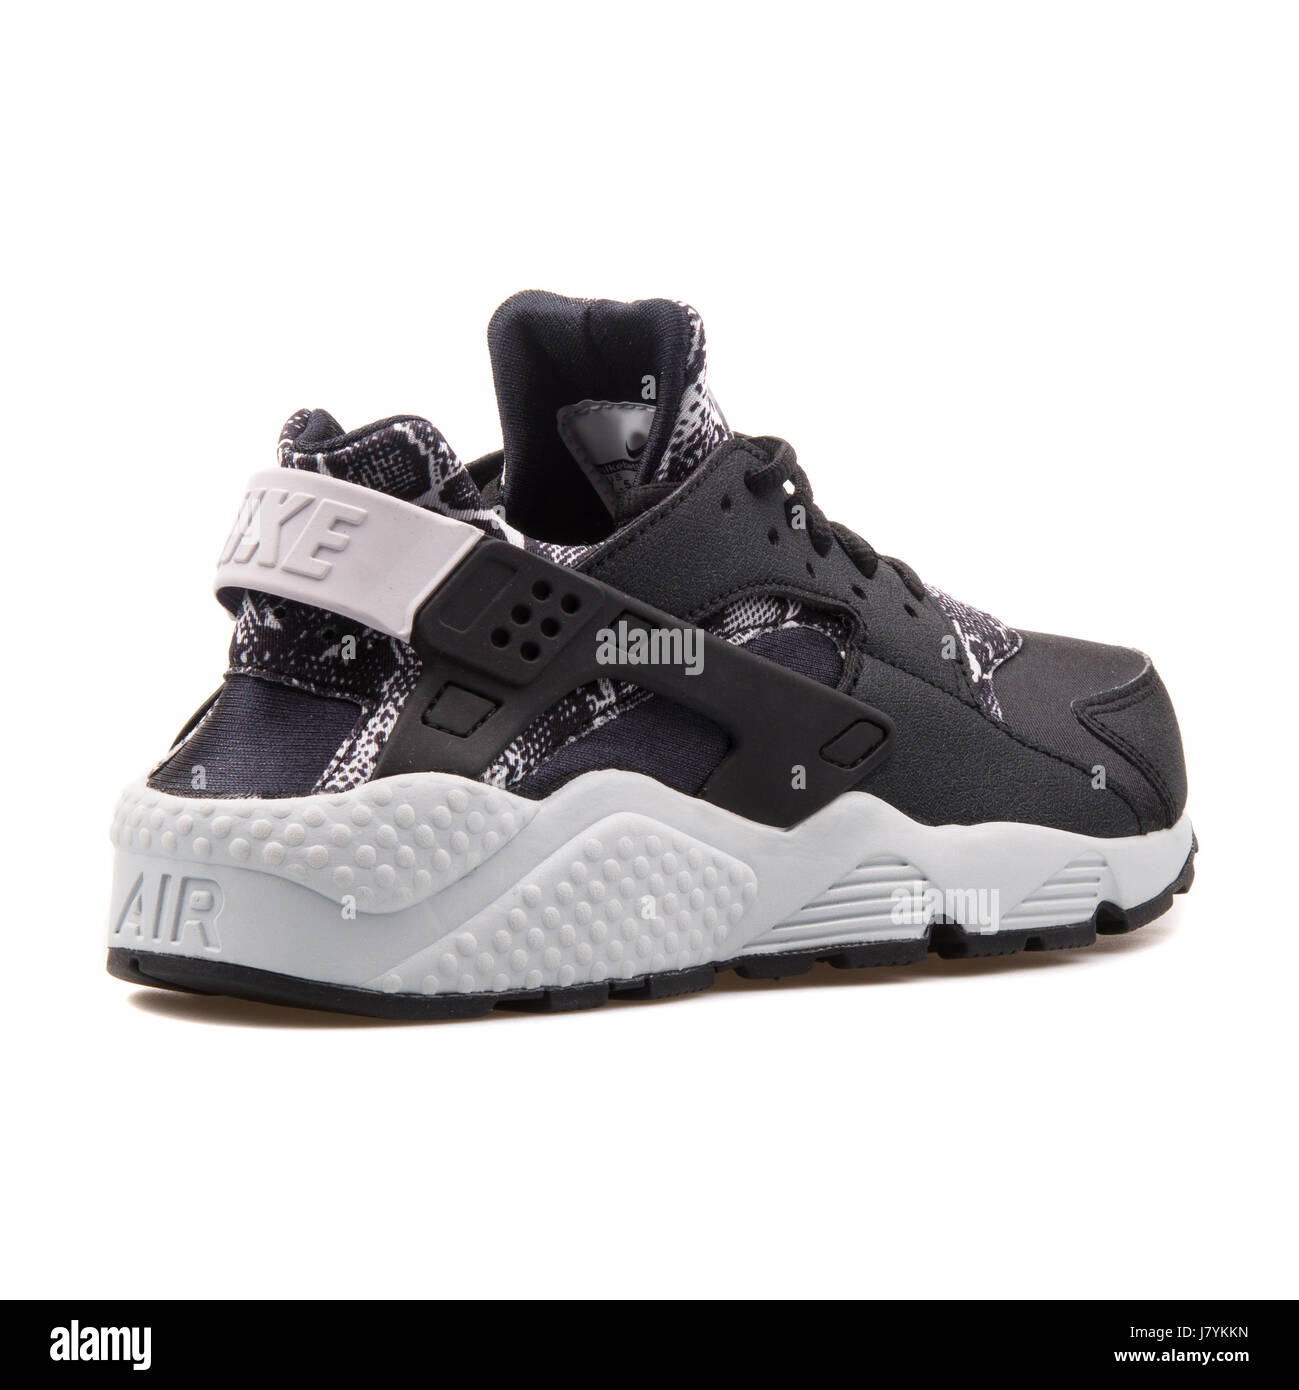 f434bea2a920d Nike WMNS Air Huarache Run Print Women s Black Running Sneakers - 725076-002